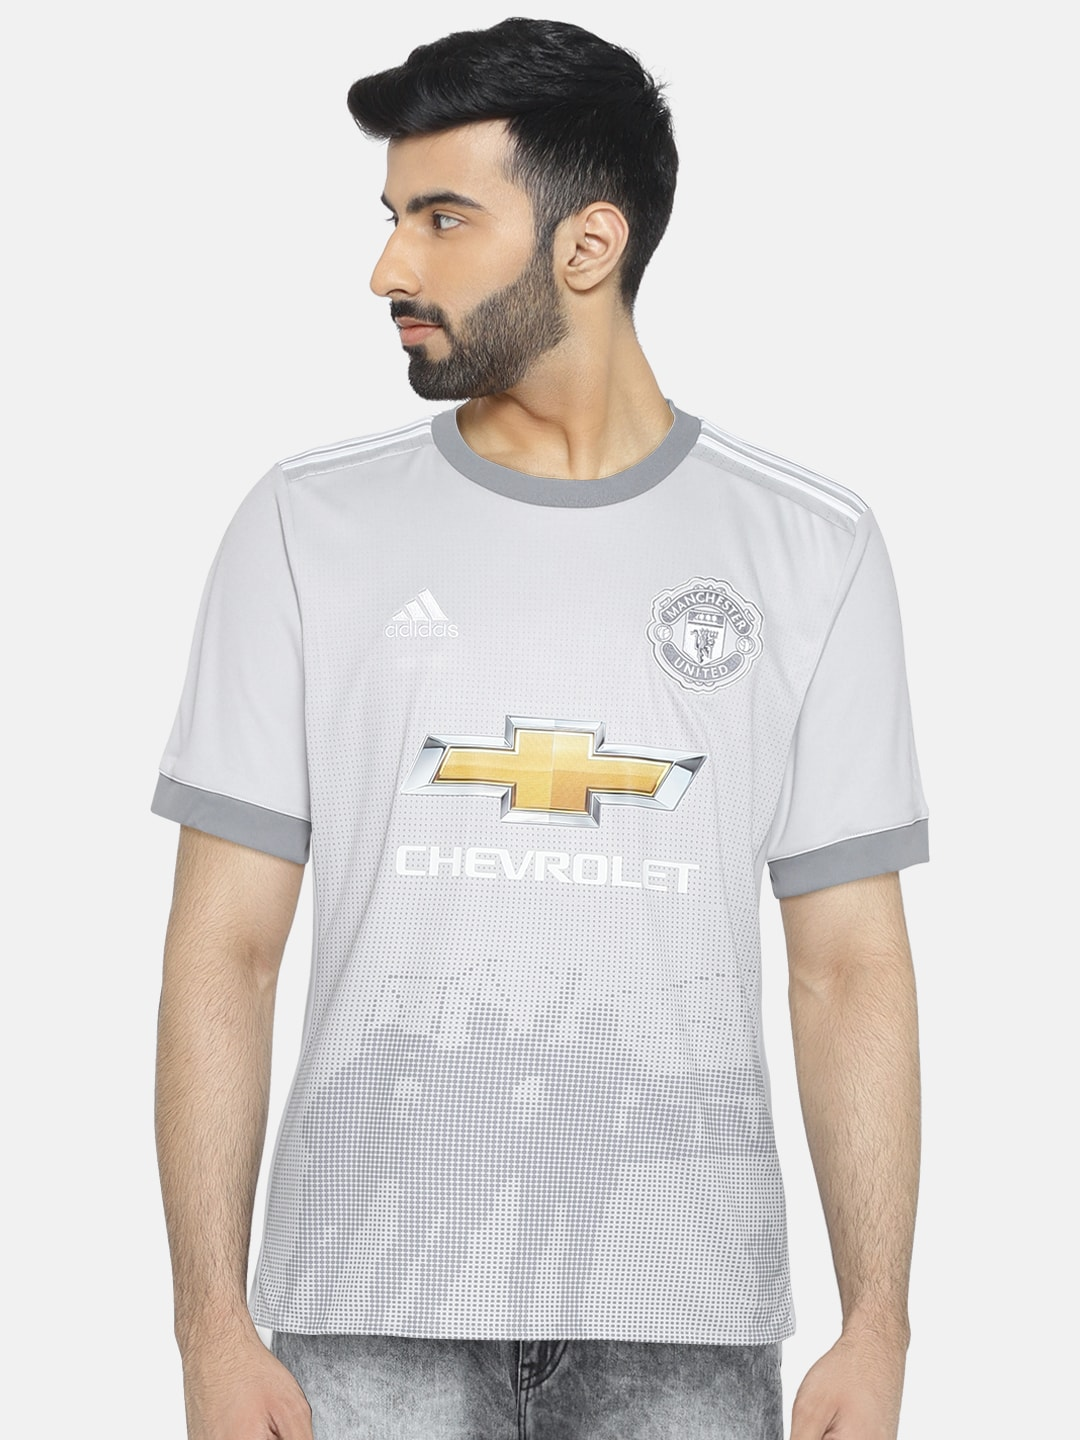 edb30f7a053 Manchester United - Exclusive Manchester United Online Store